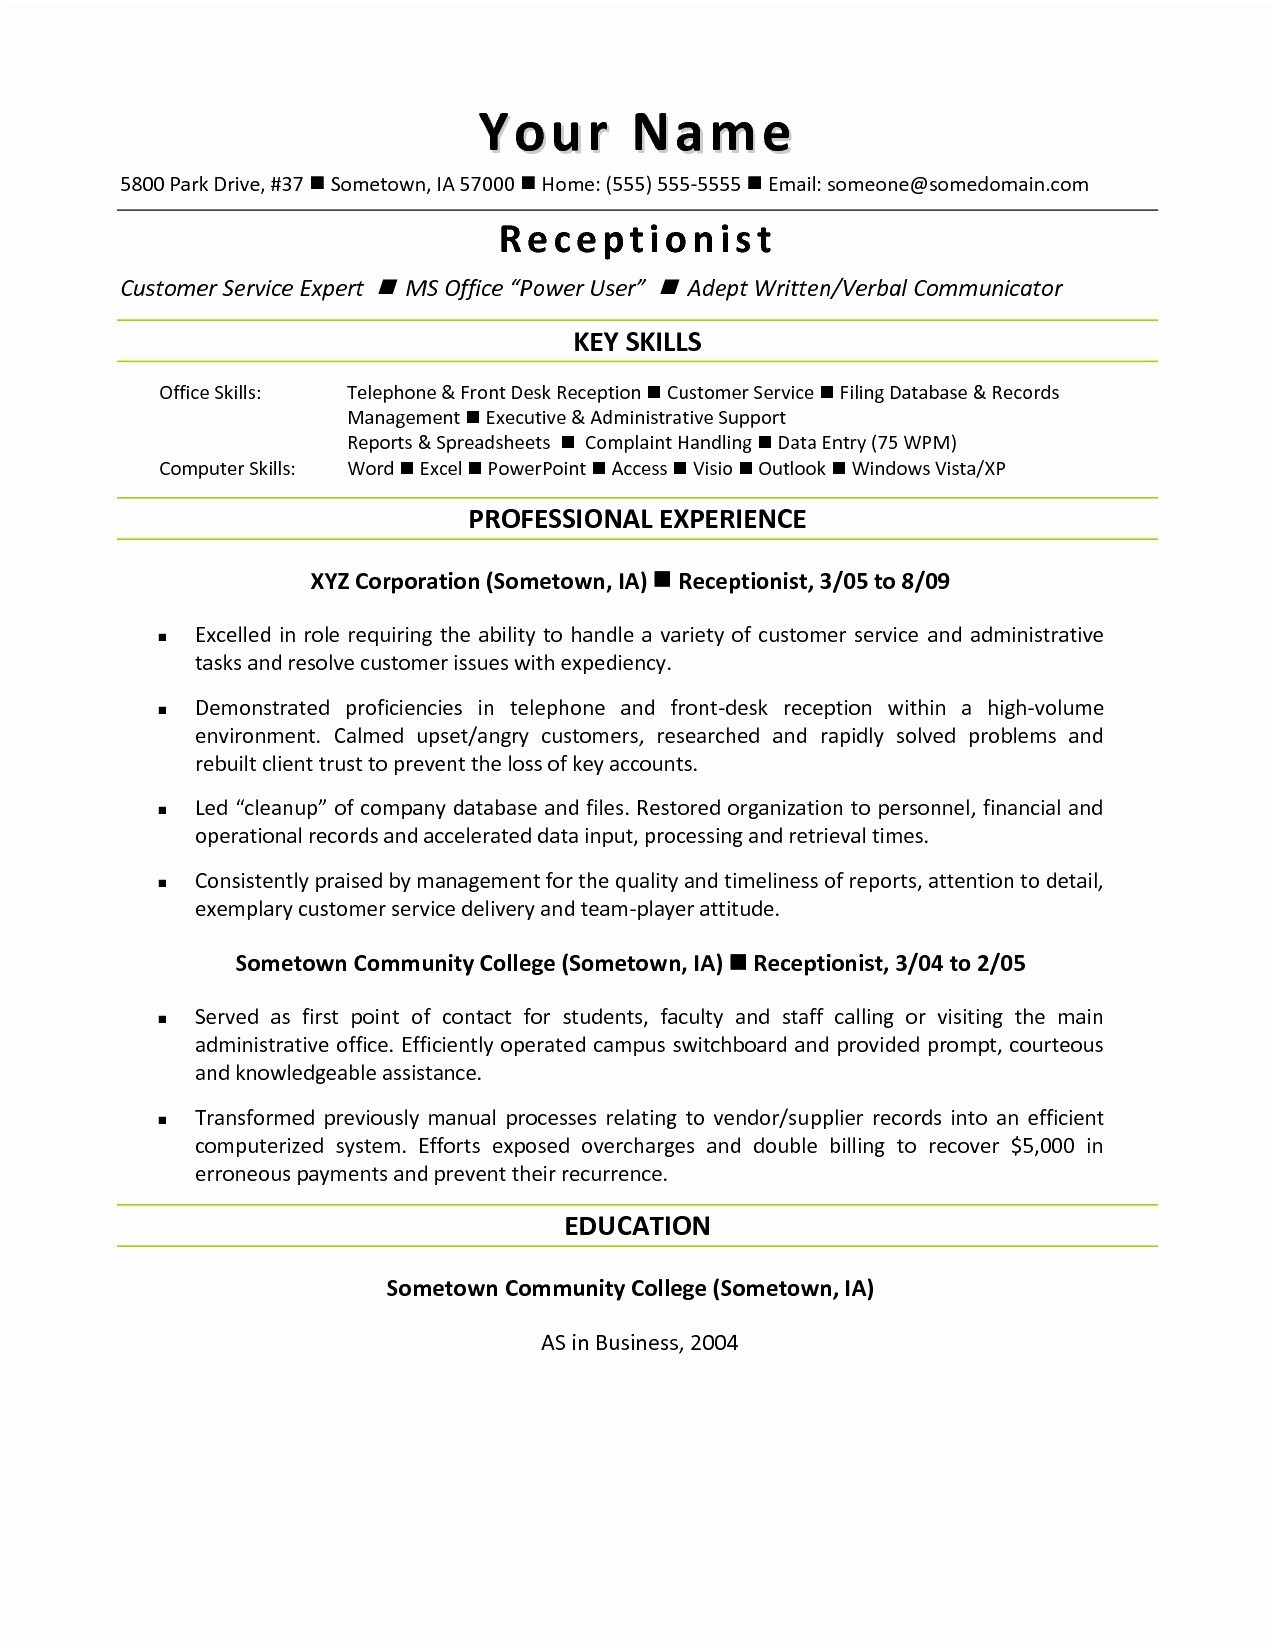 microsoft word cover letter template Collection-Resume Microsoft Word Fresh Resume Mail Format Sample Fresh Beautiful Od Consultant Cover Letter Information 18-b